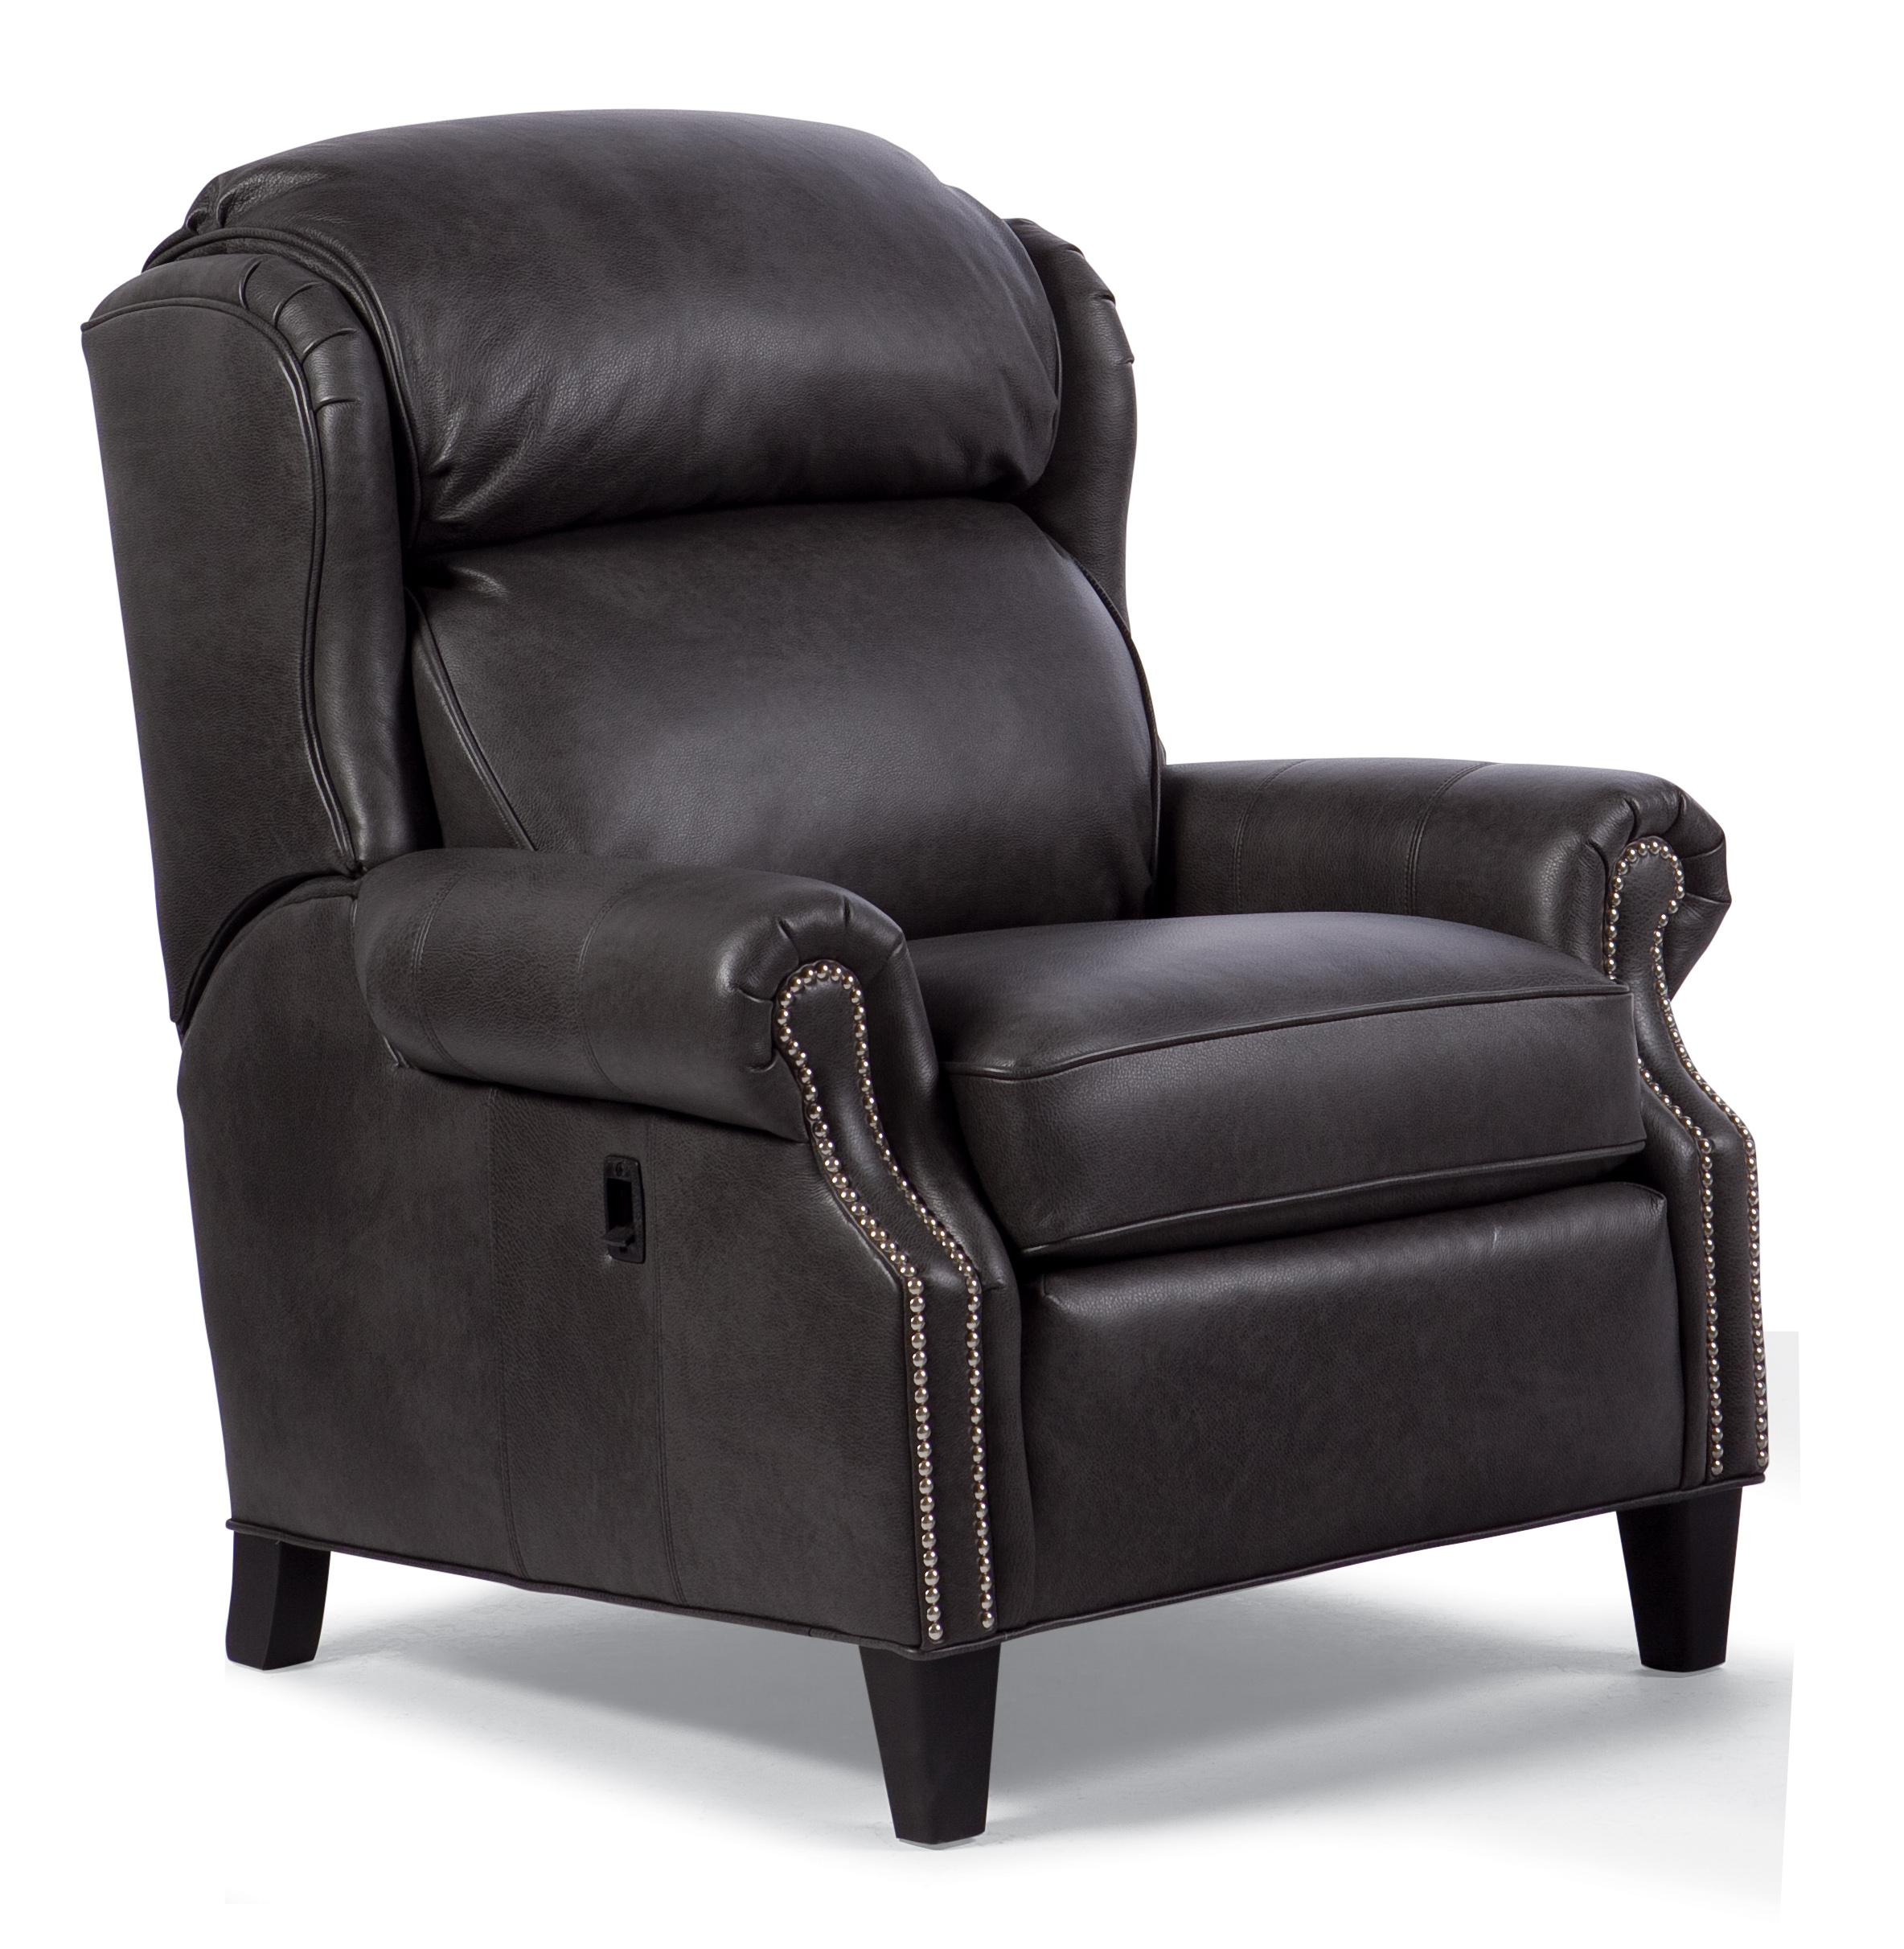 High Quality Recliner